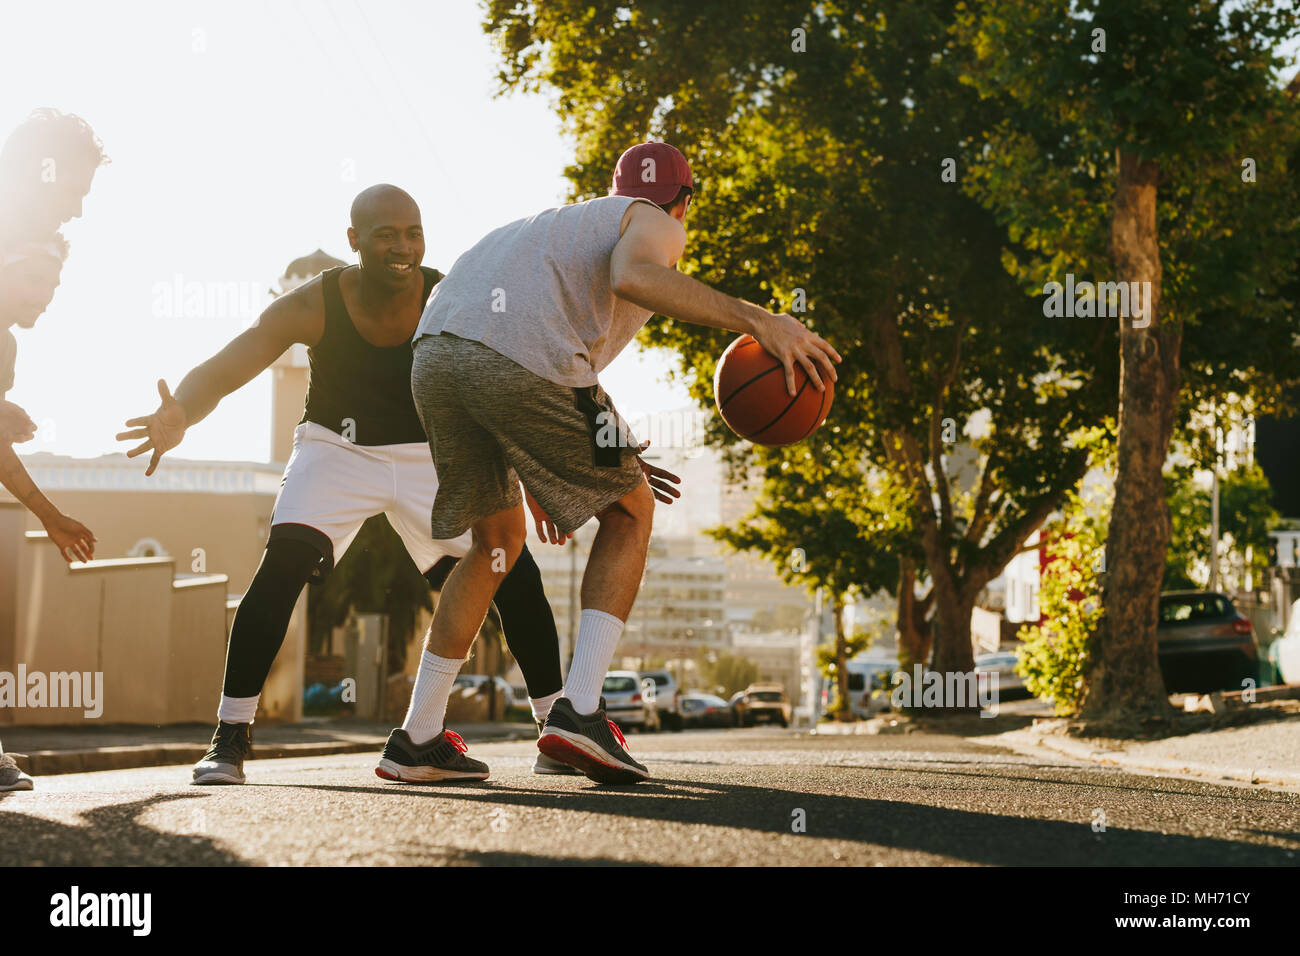 Men playing basketball game on a sunny day on an empty street. Four men playing basketball on street. Stock Photo